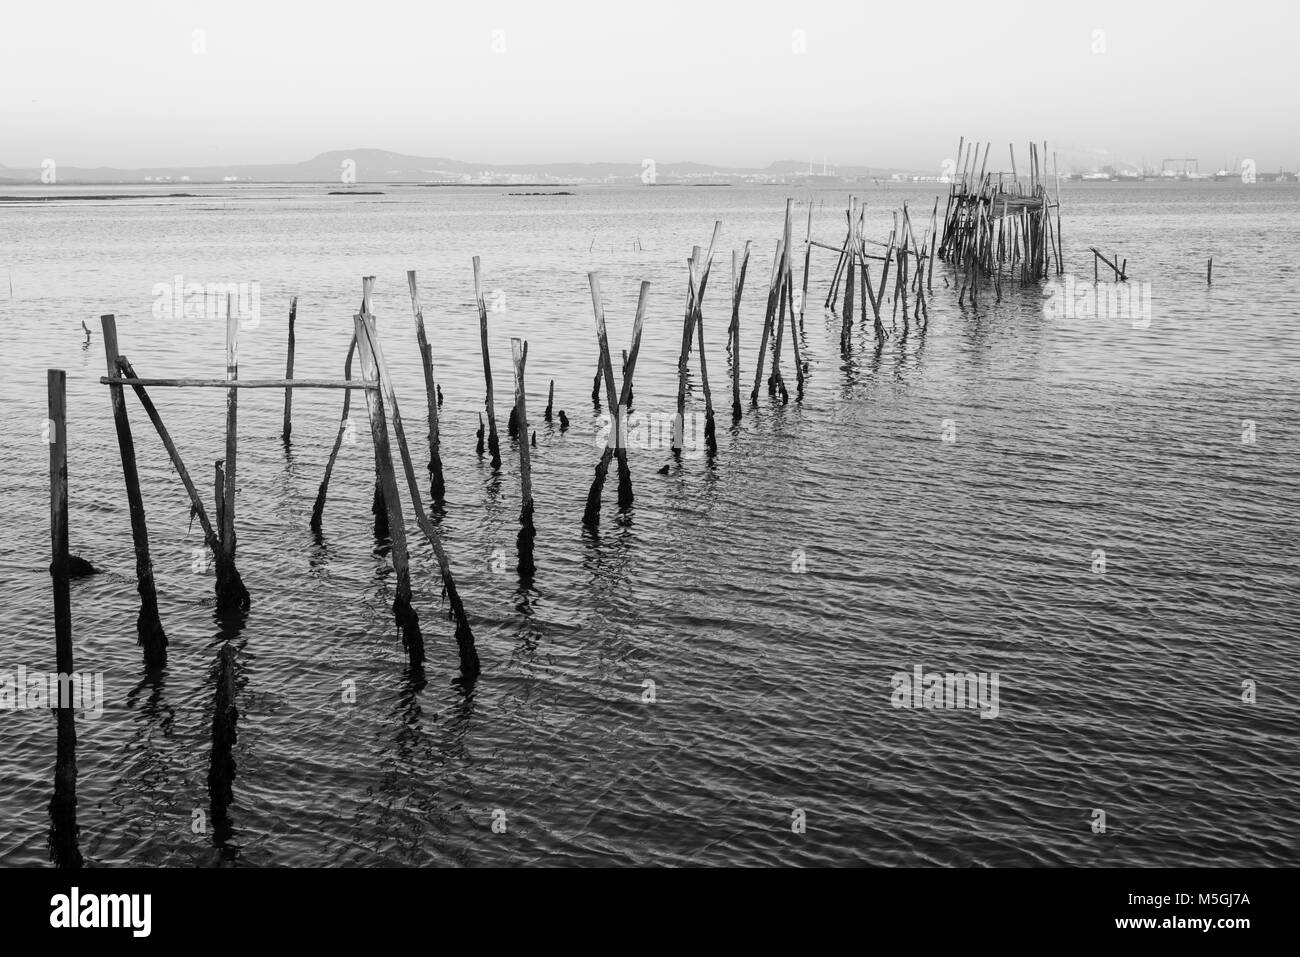 Carrasqueira ancient fishing port - Stock Image